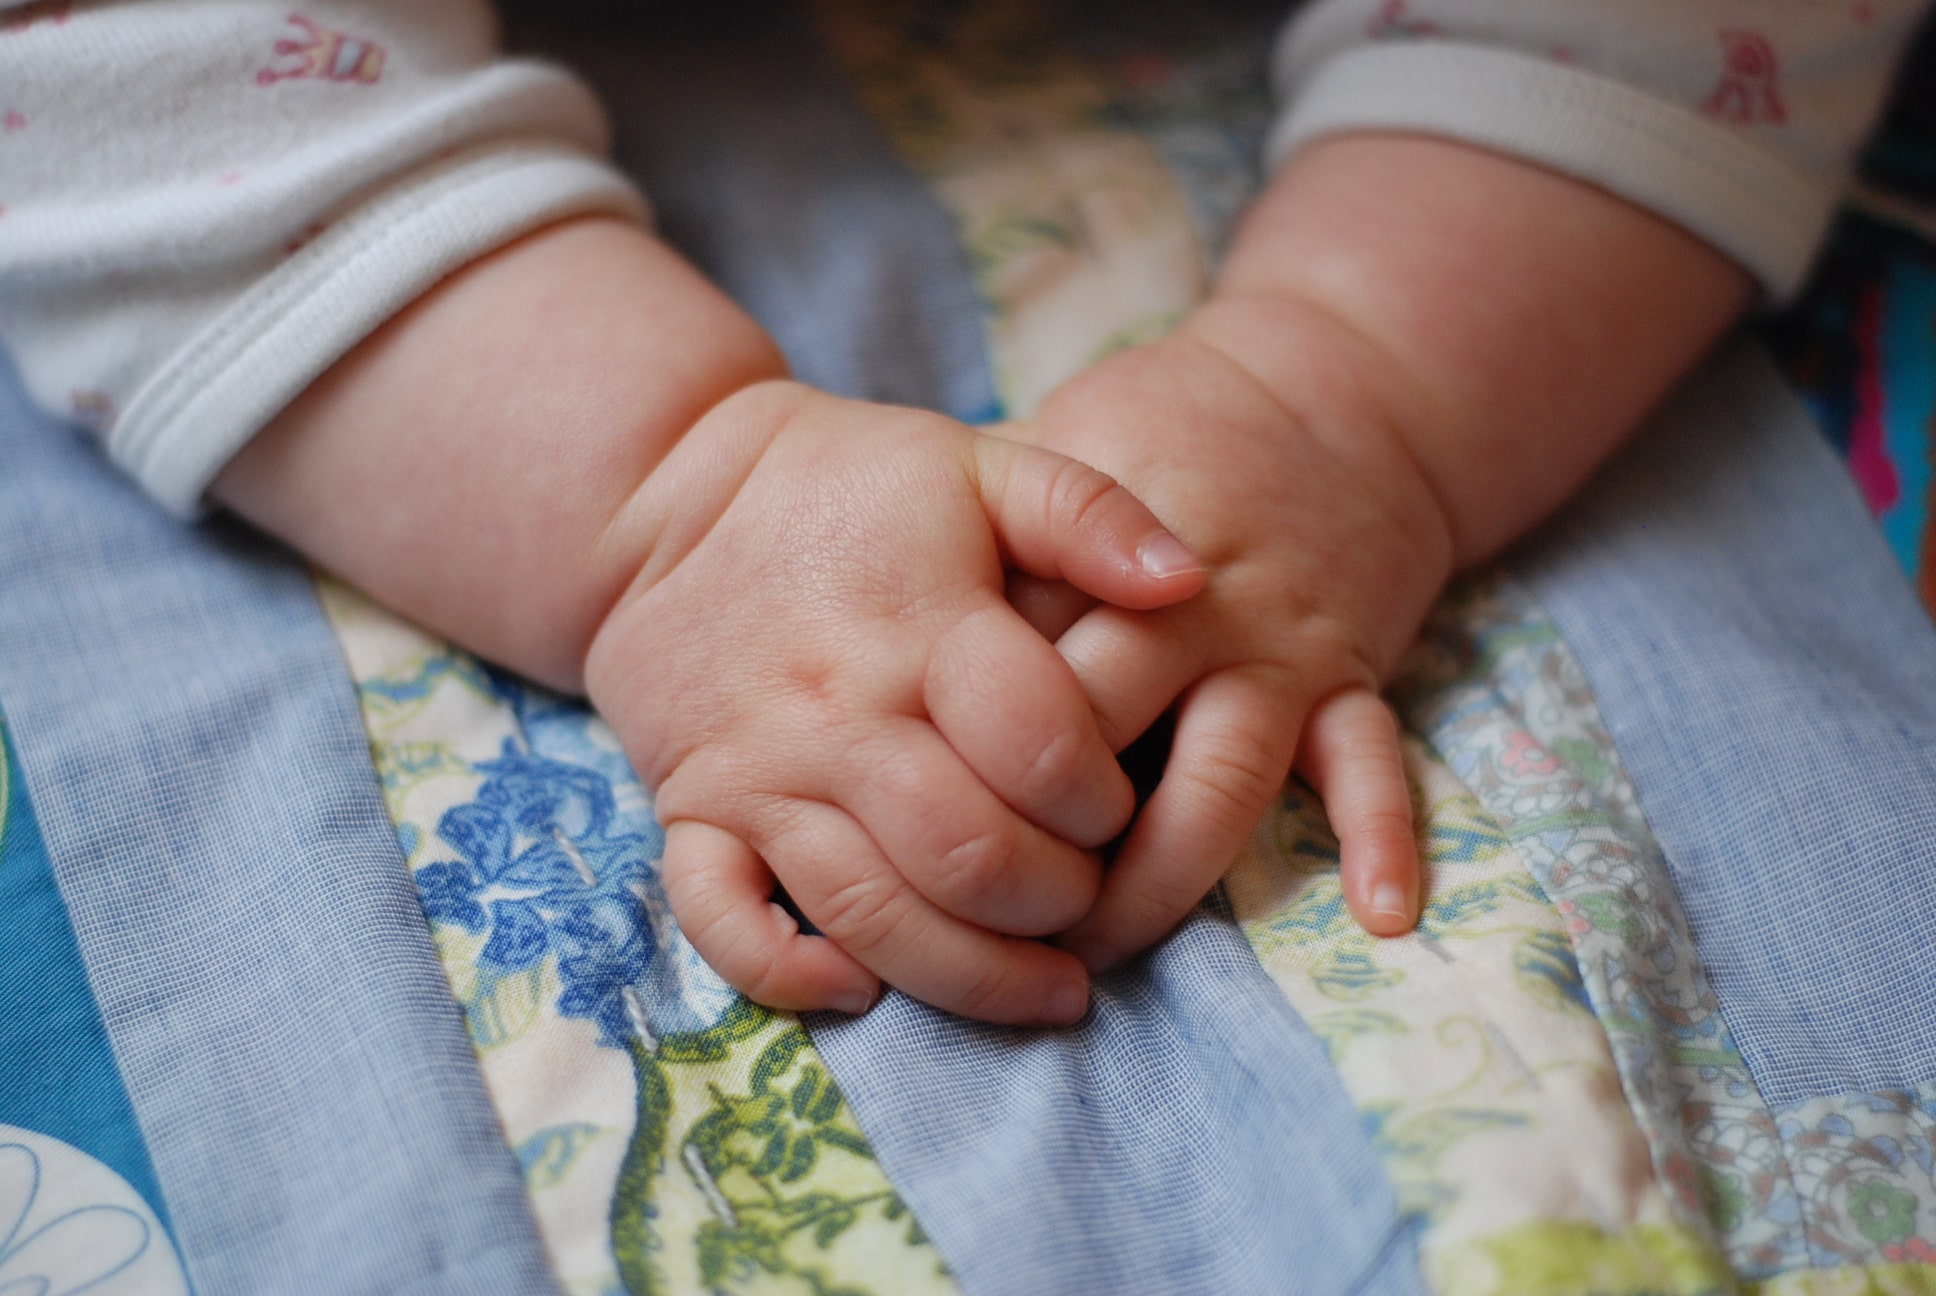 doula in berlin, english speaking doula, birth and postpartum doula